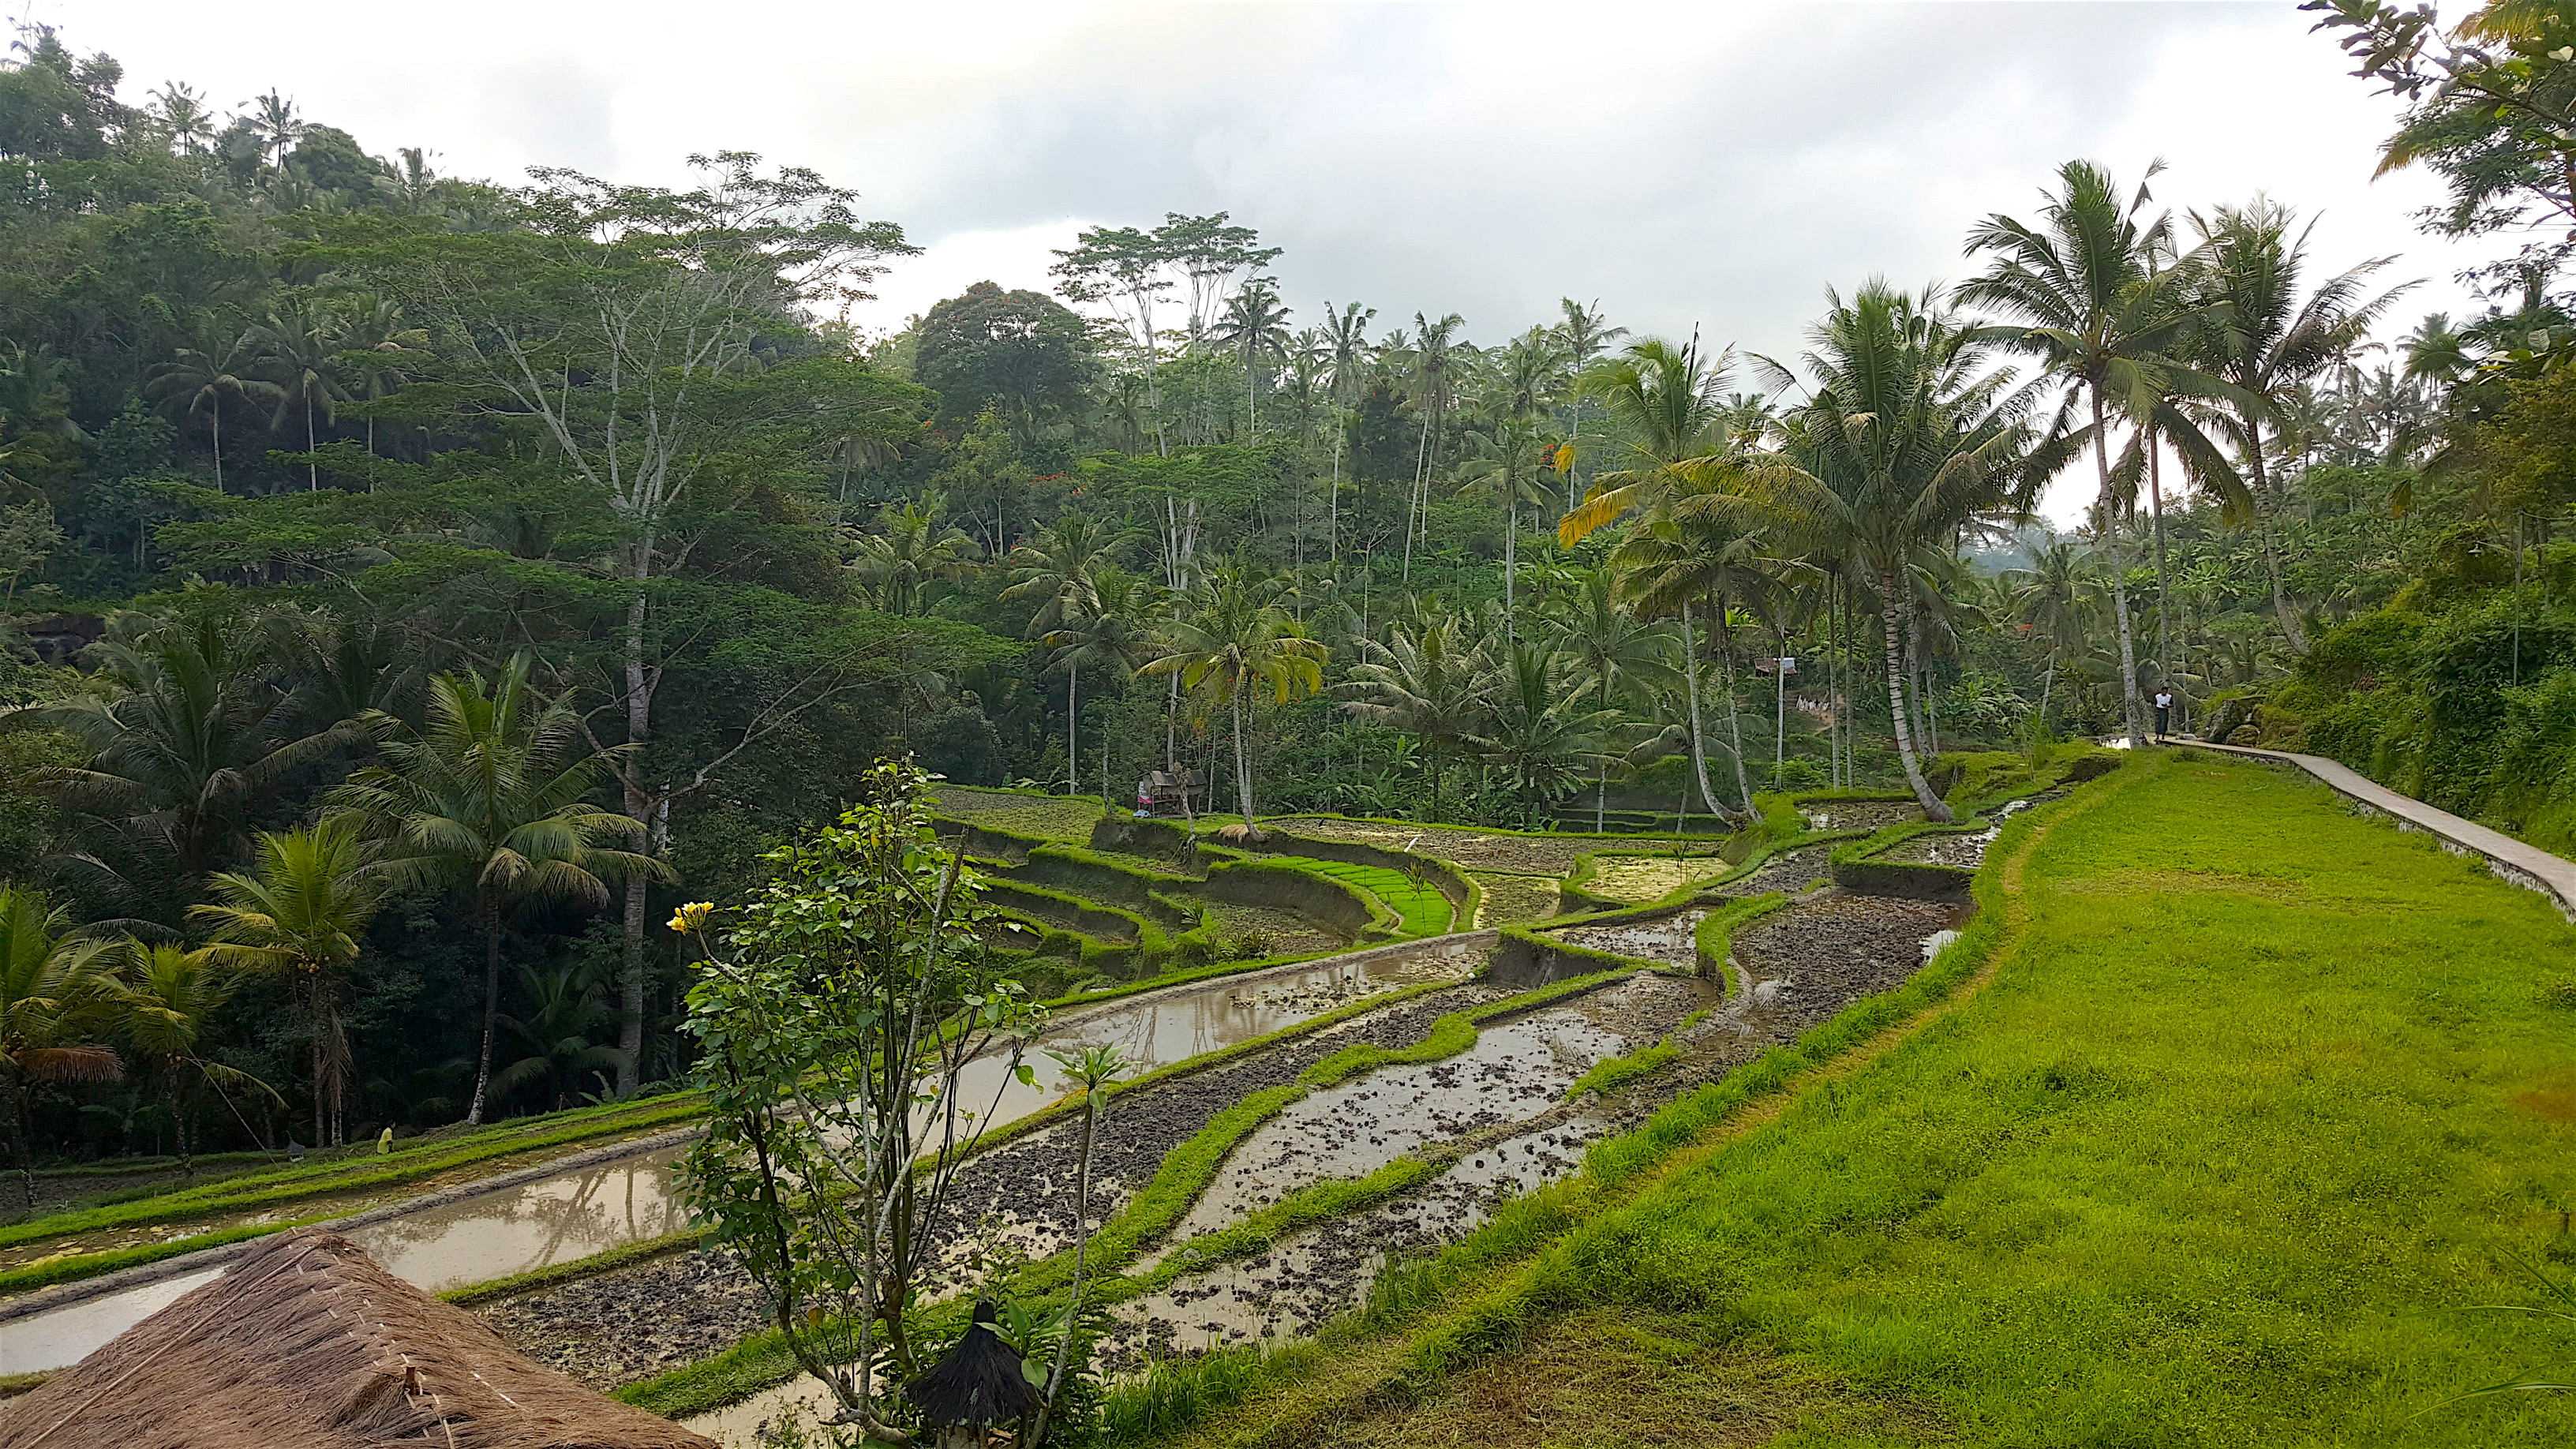 Bali, rice terraces at Tegallalang